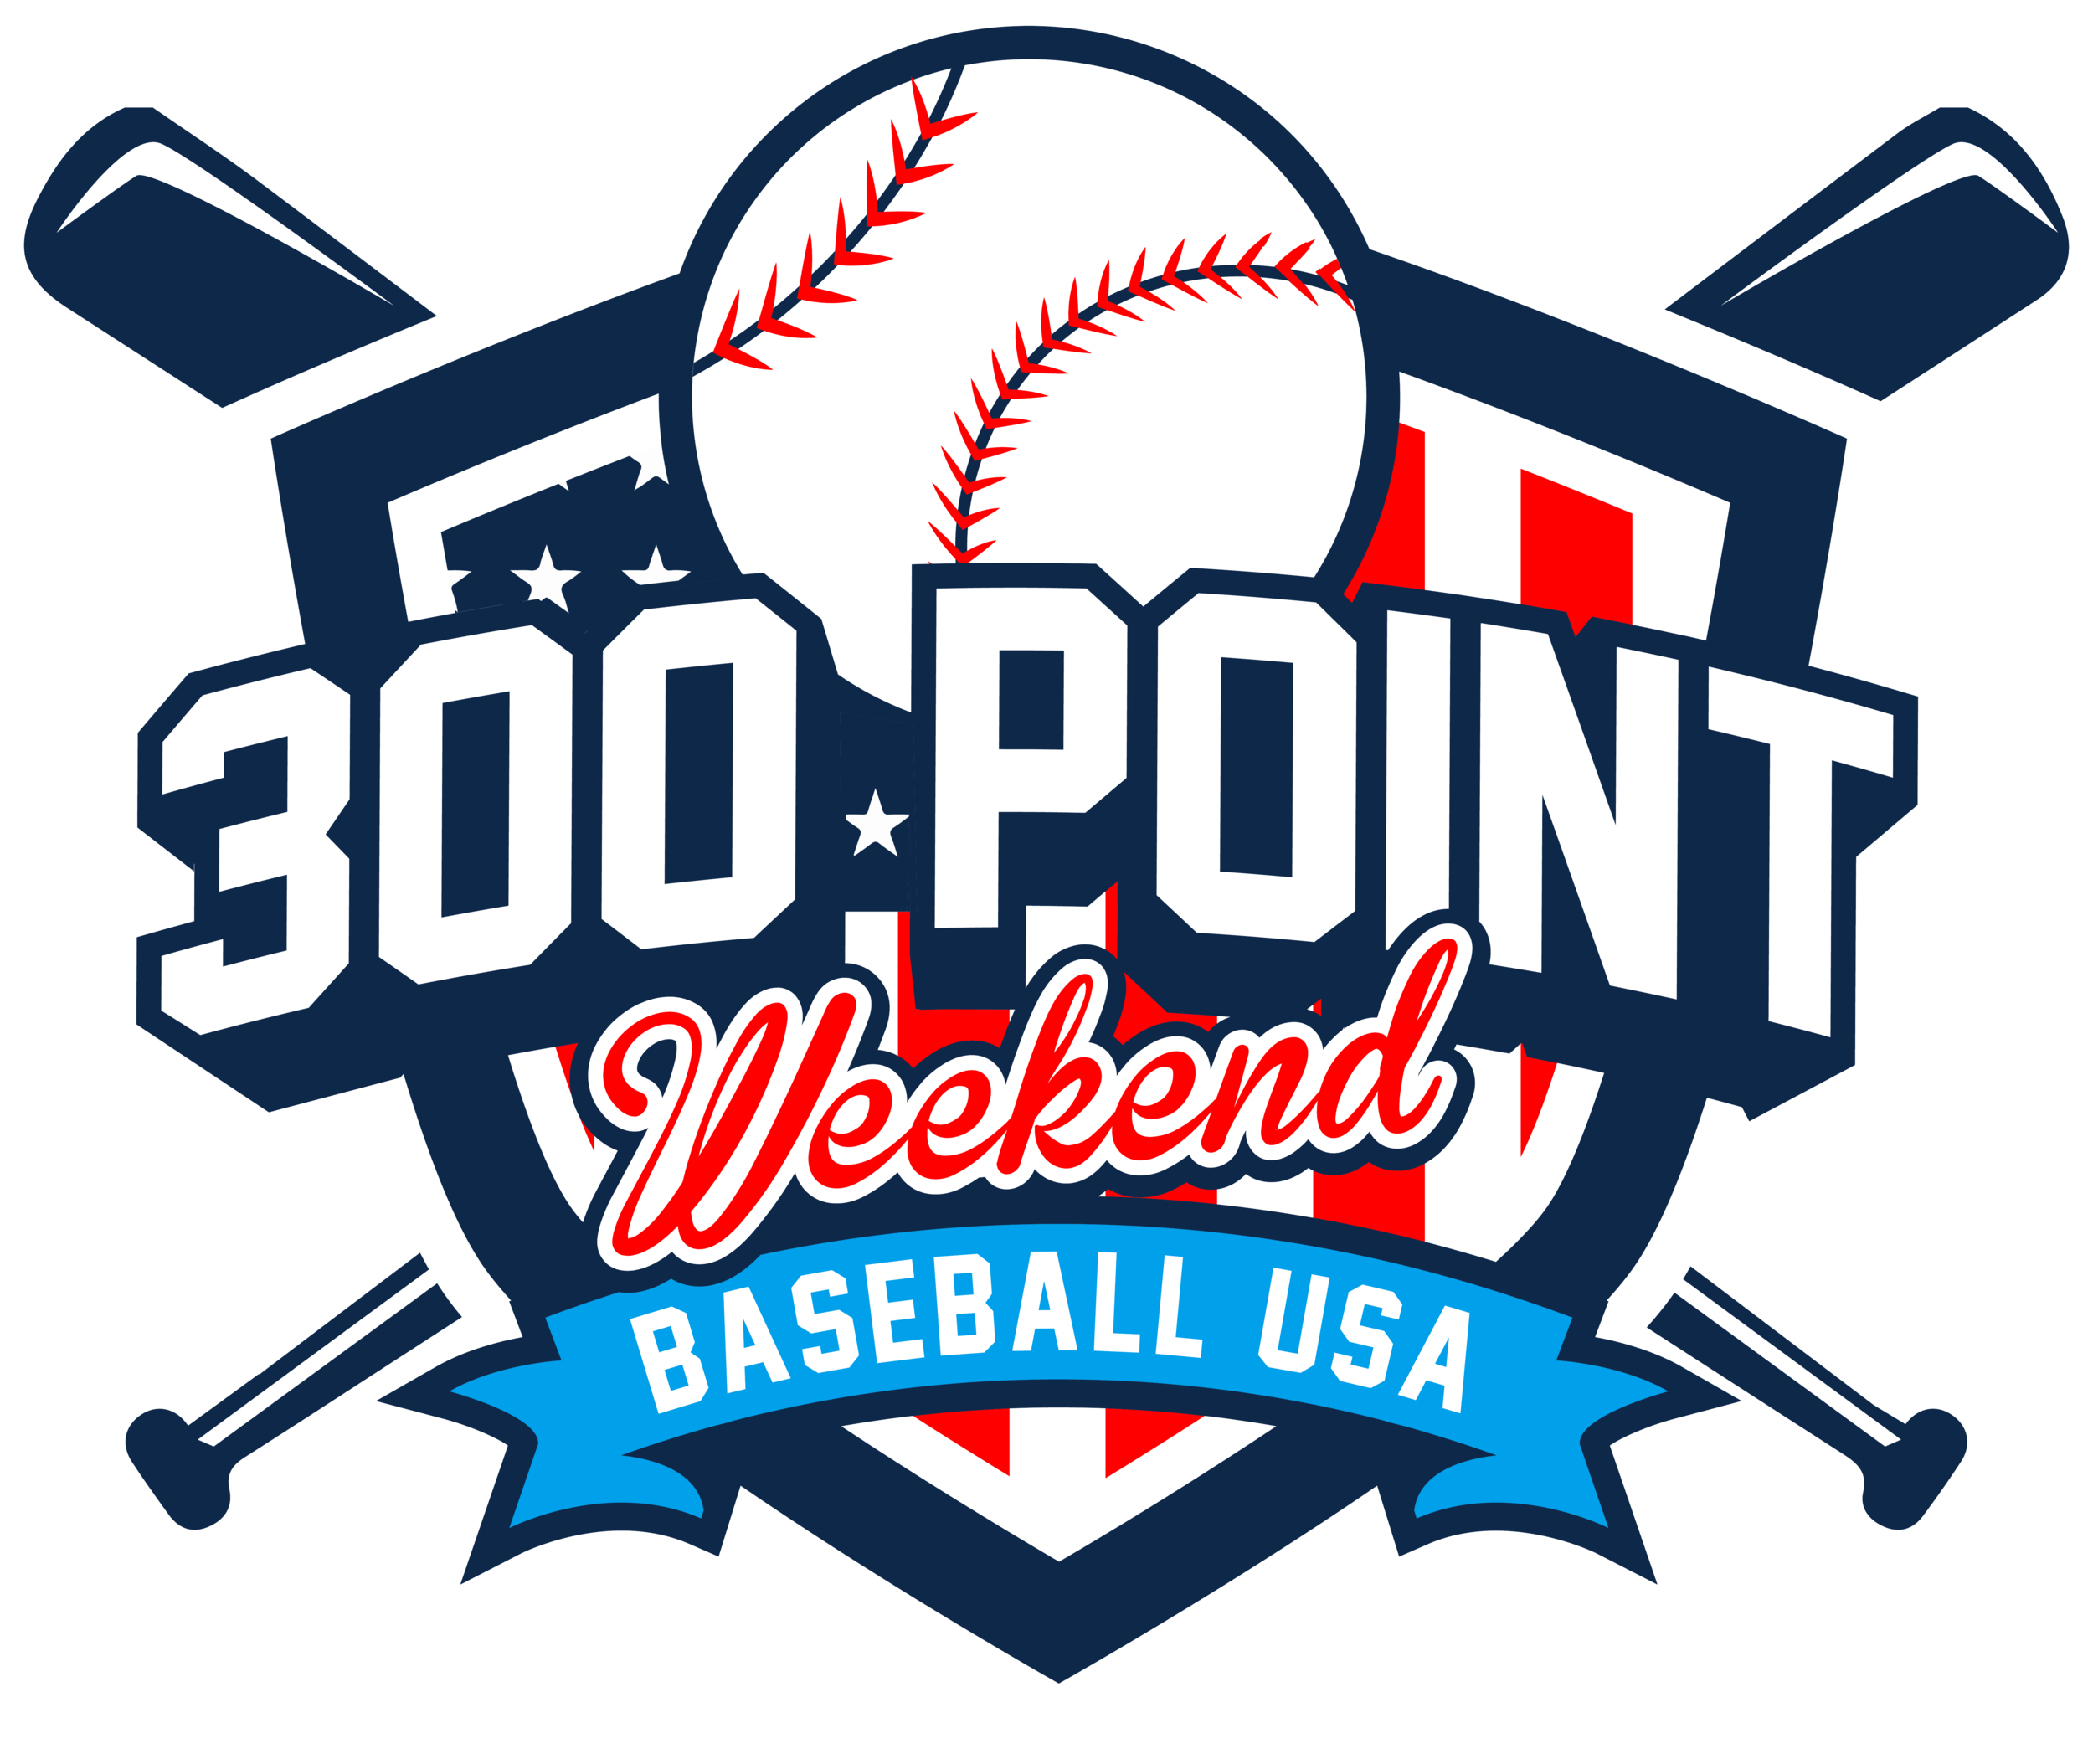 EVNT-Apparel-Custom-Event-Printing-300-Point-Weekend-Baesball-USA-Houston.png